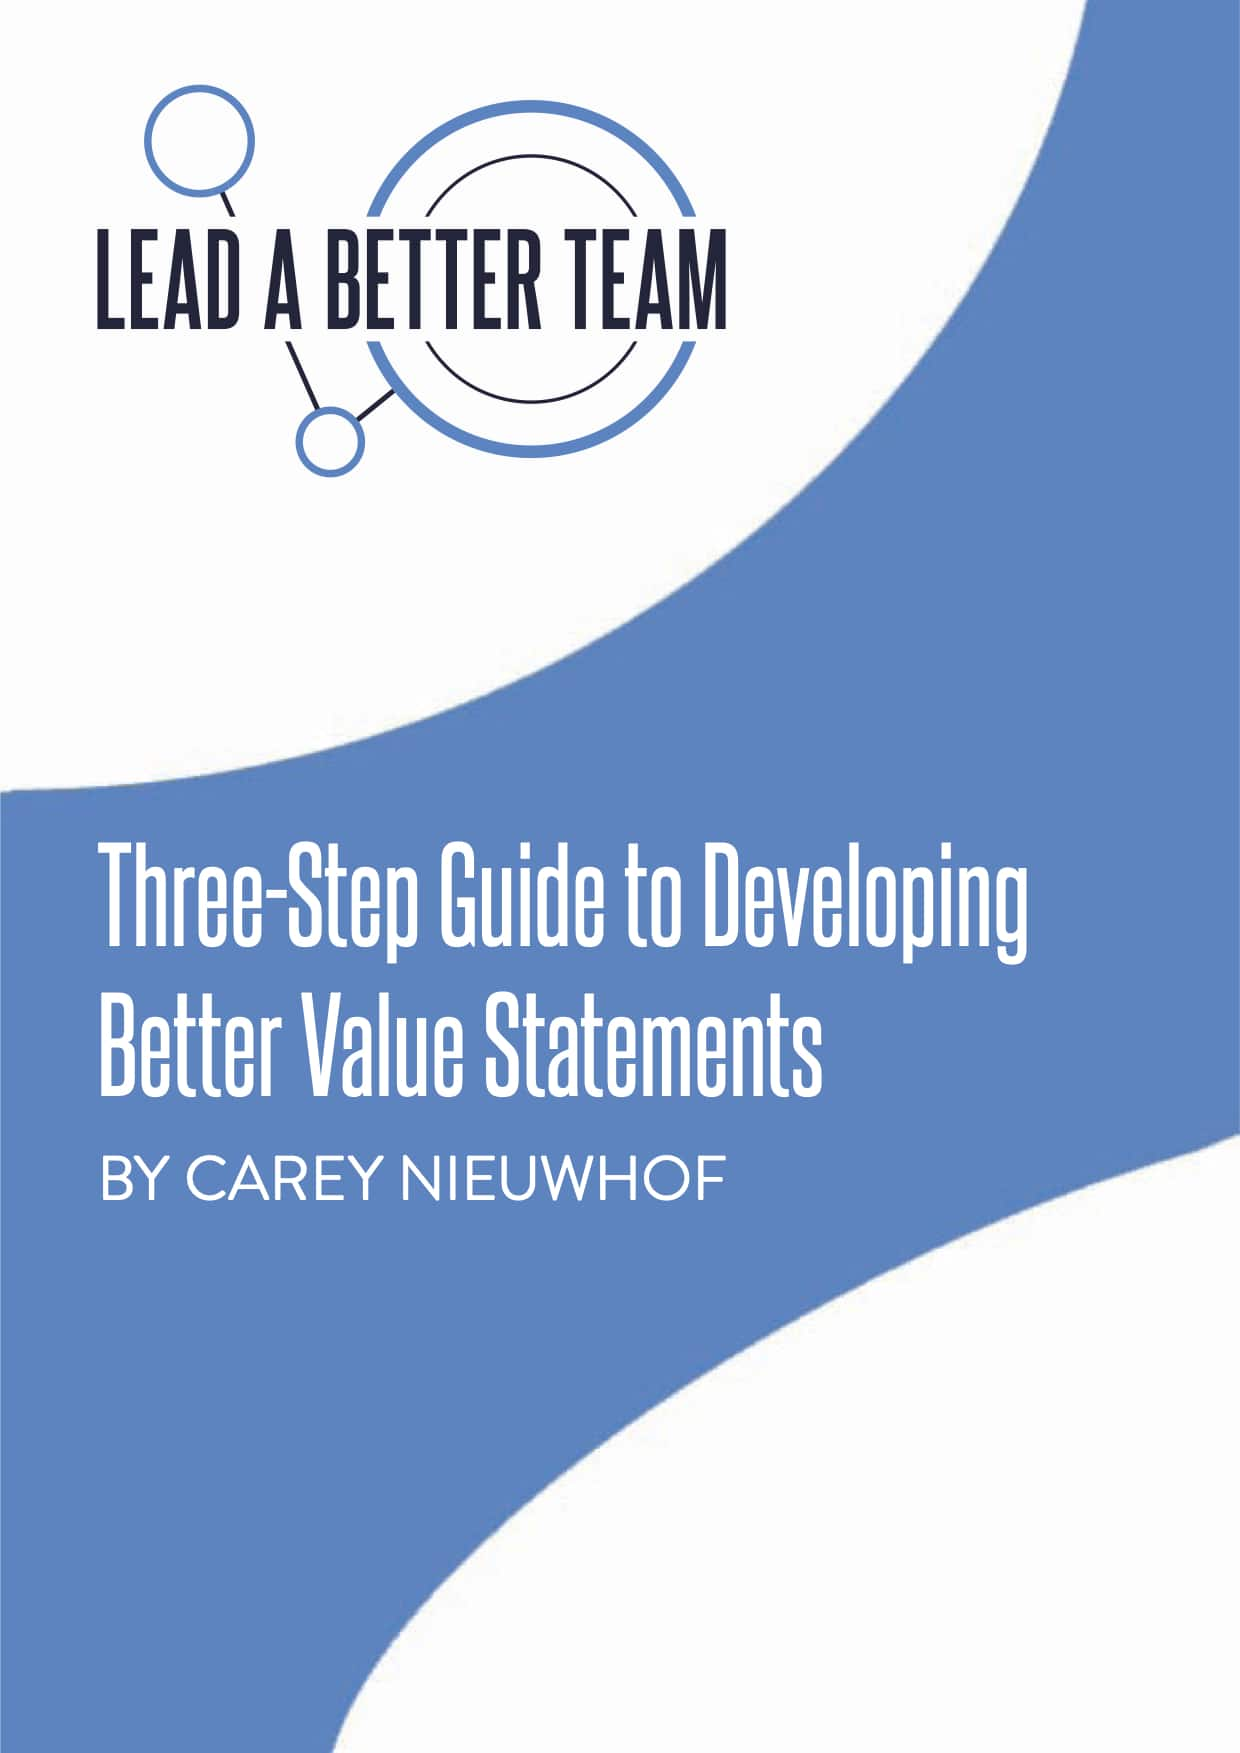 3 Step Guide to Developing Better Value Statements Cover Page